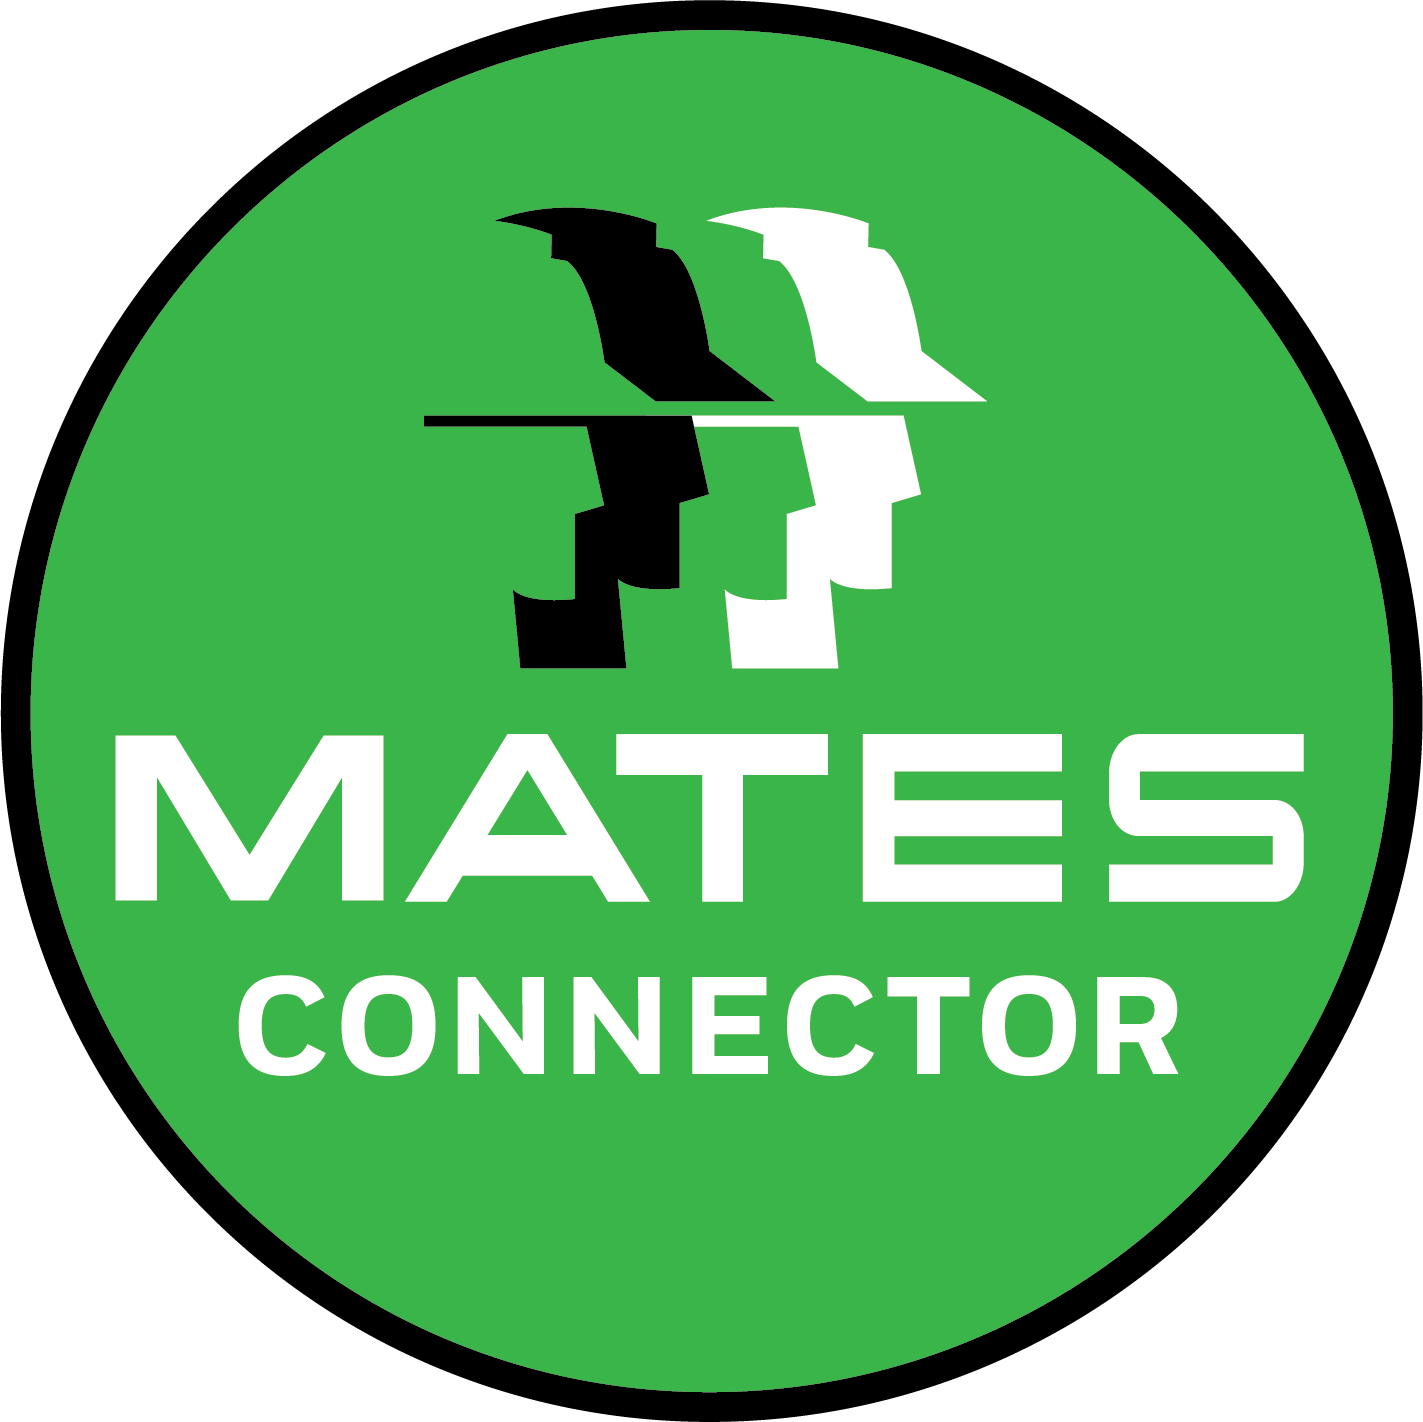 MATES in Construction | MATES Connector